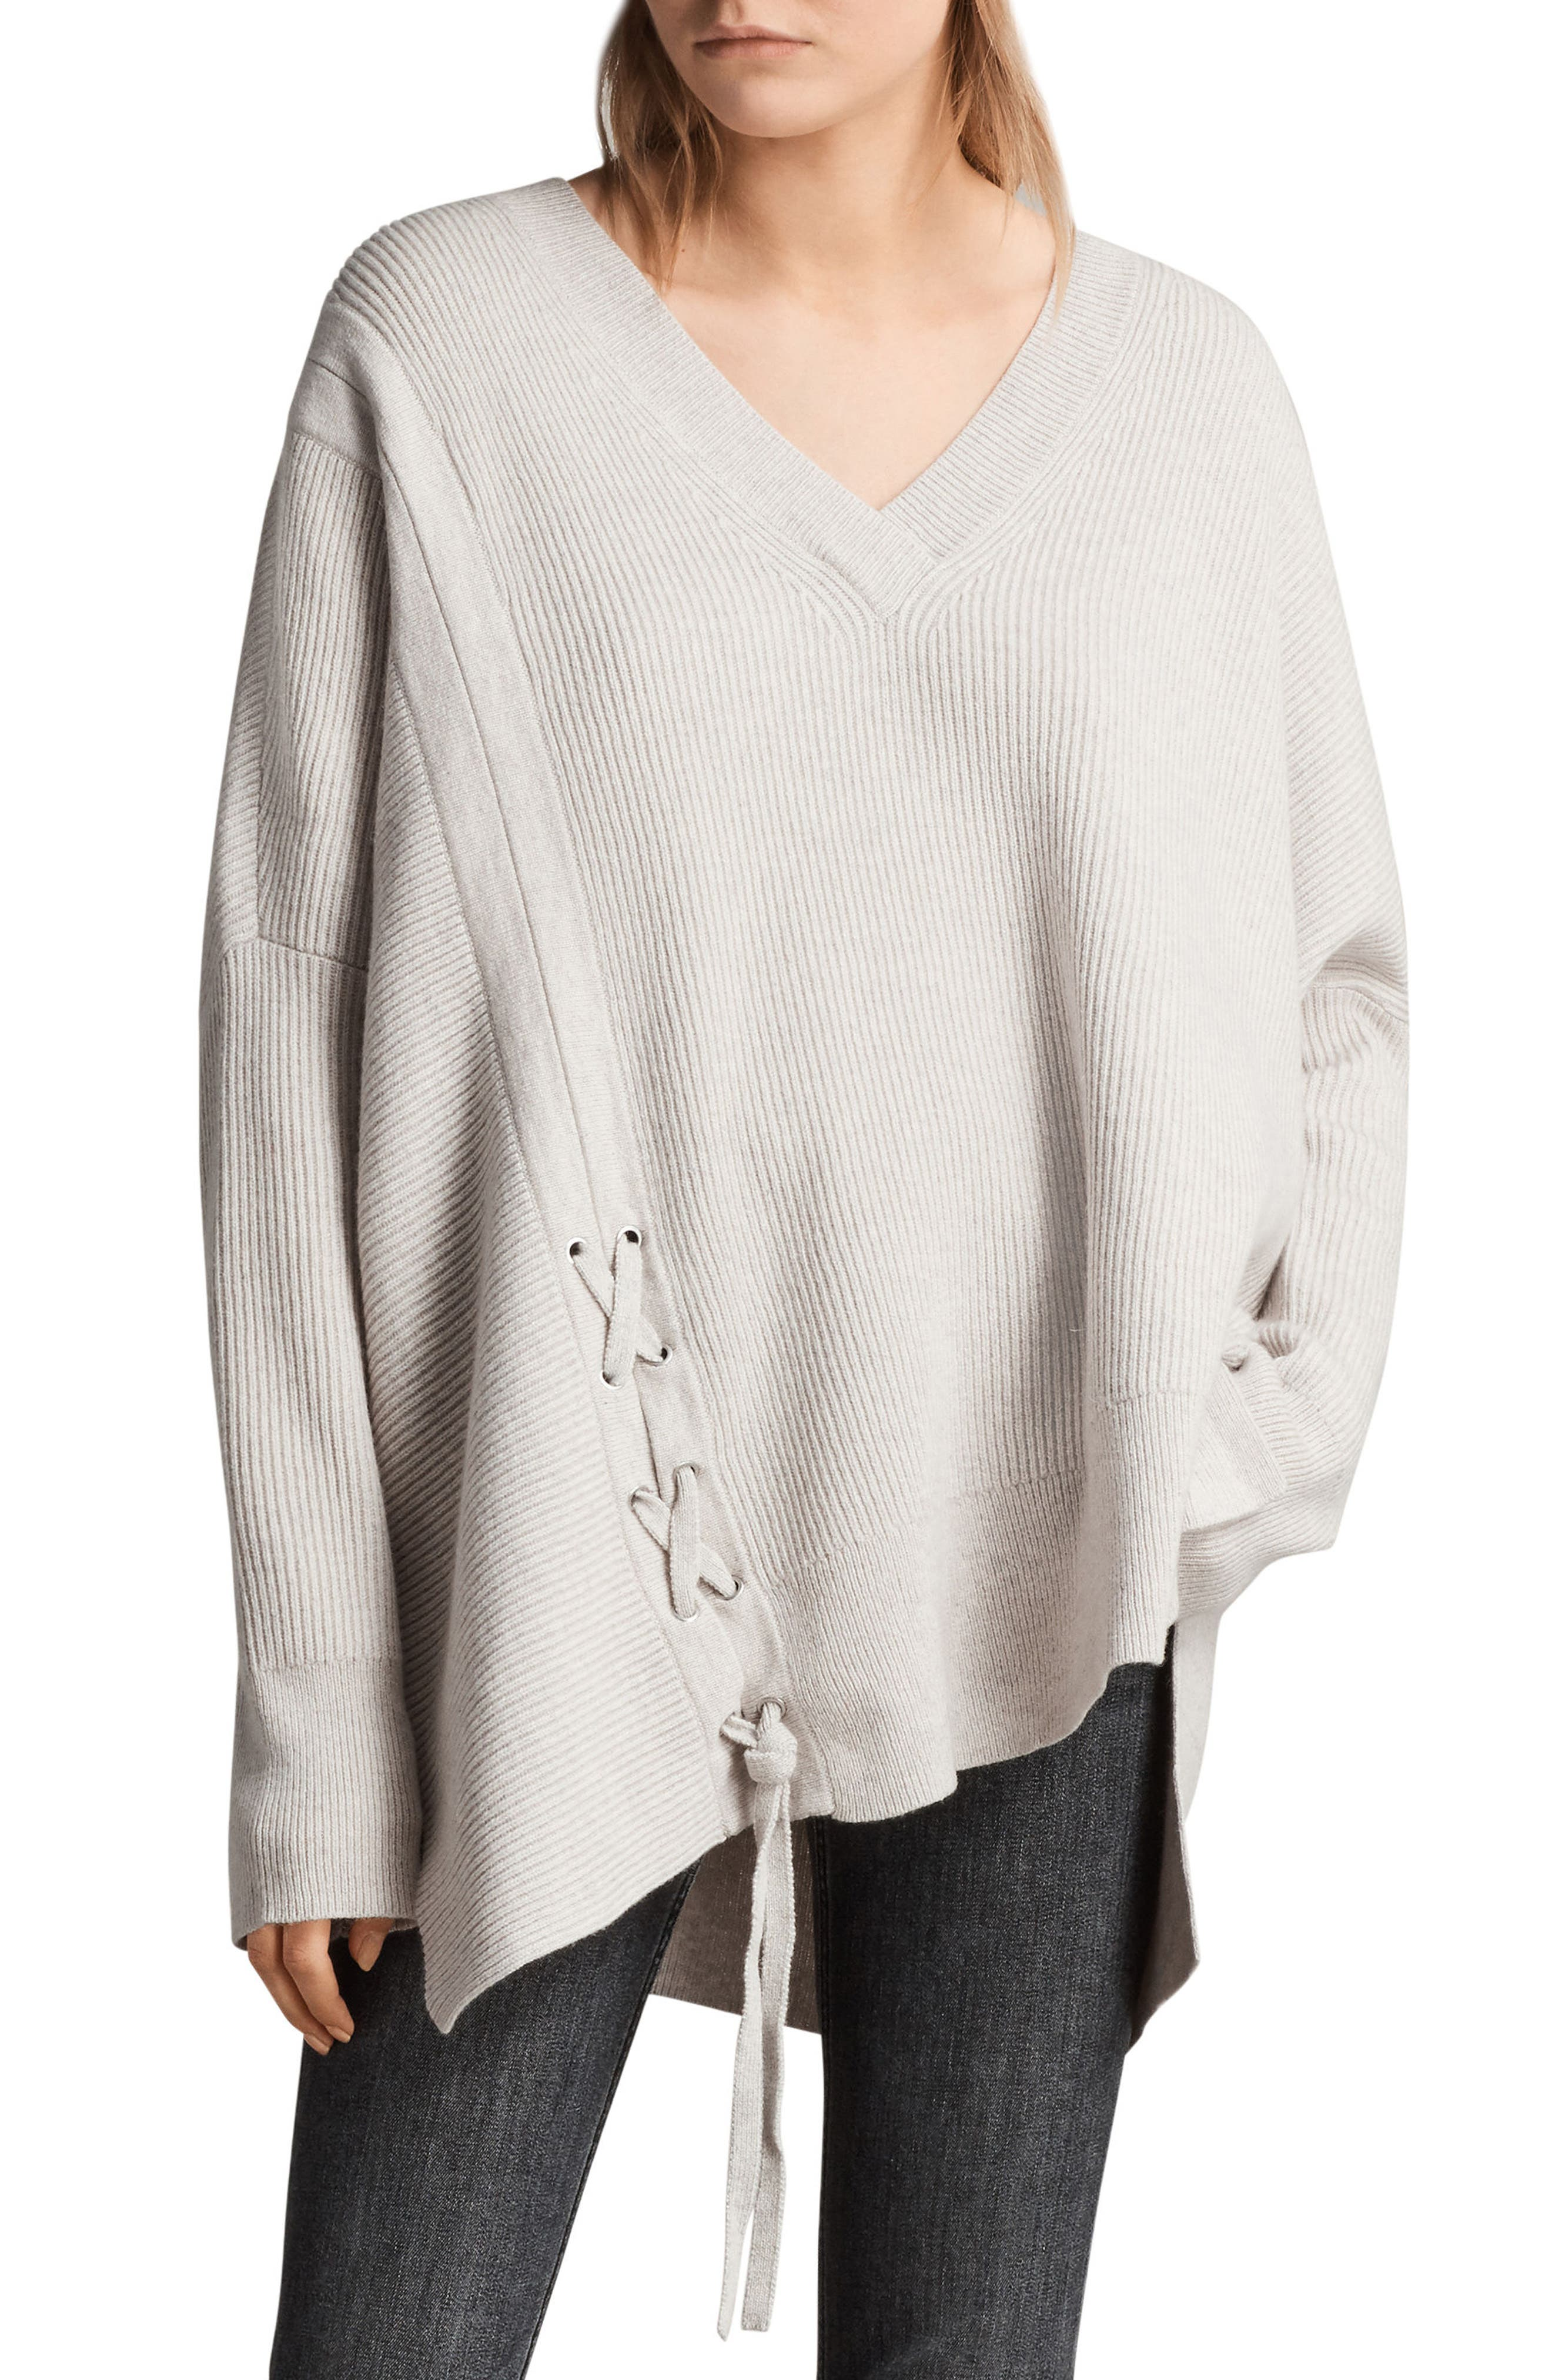 Able Laced Sweater,                         Main,                         color, Porcelain White